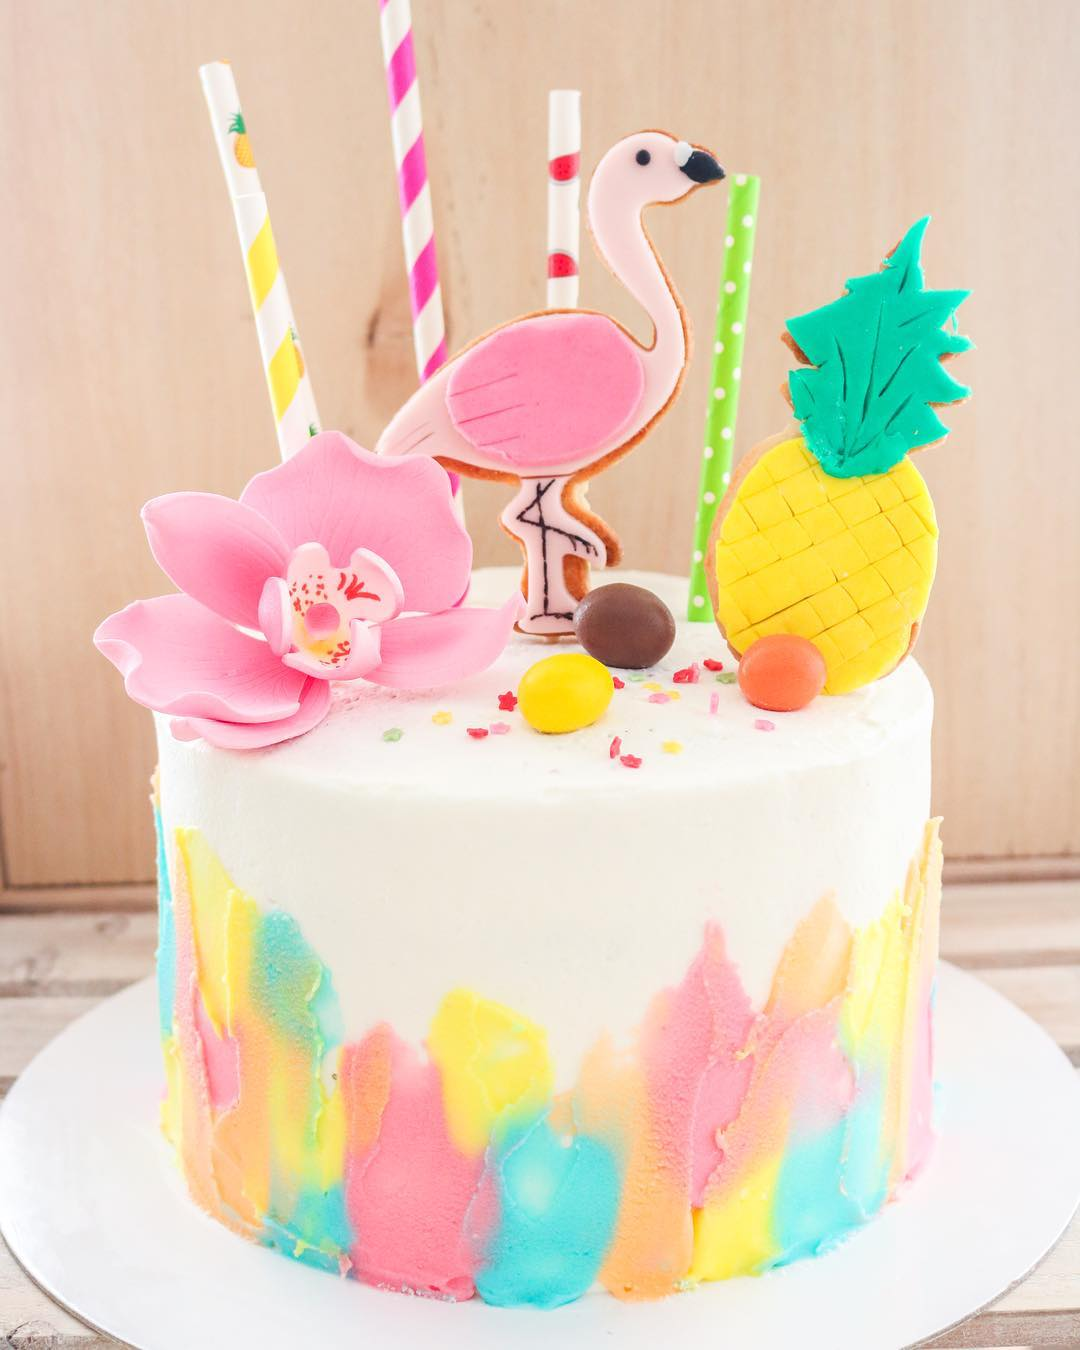 Tarta tropical